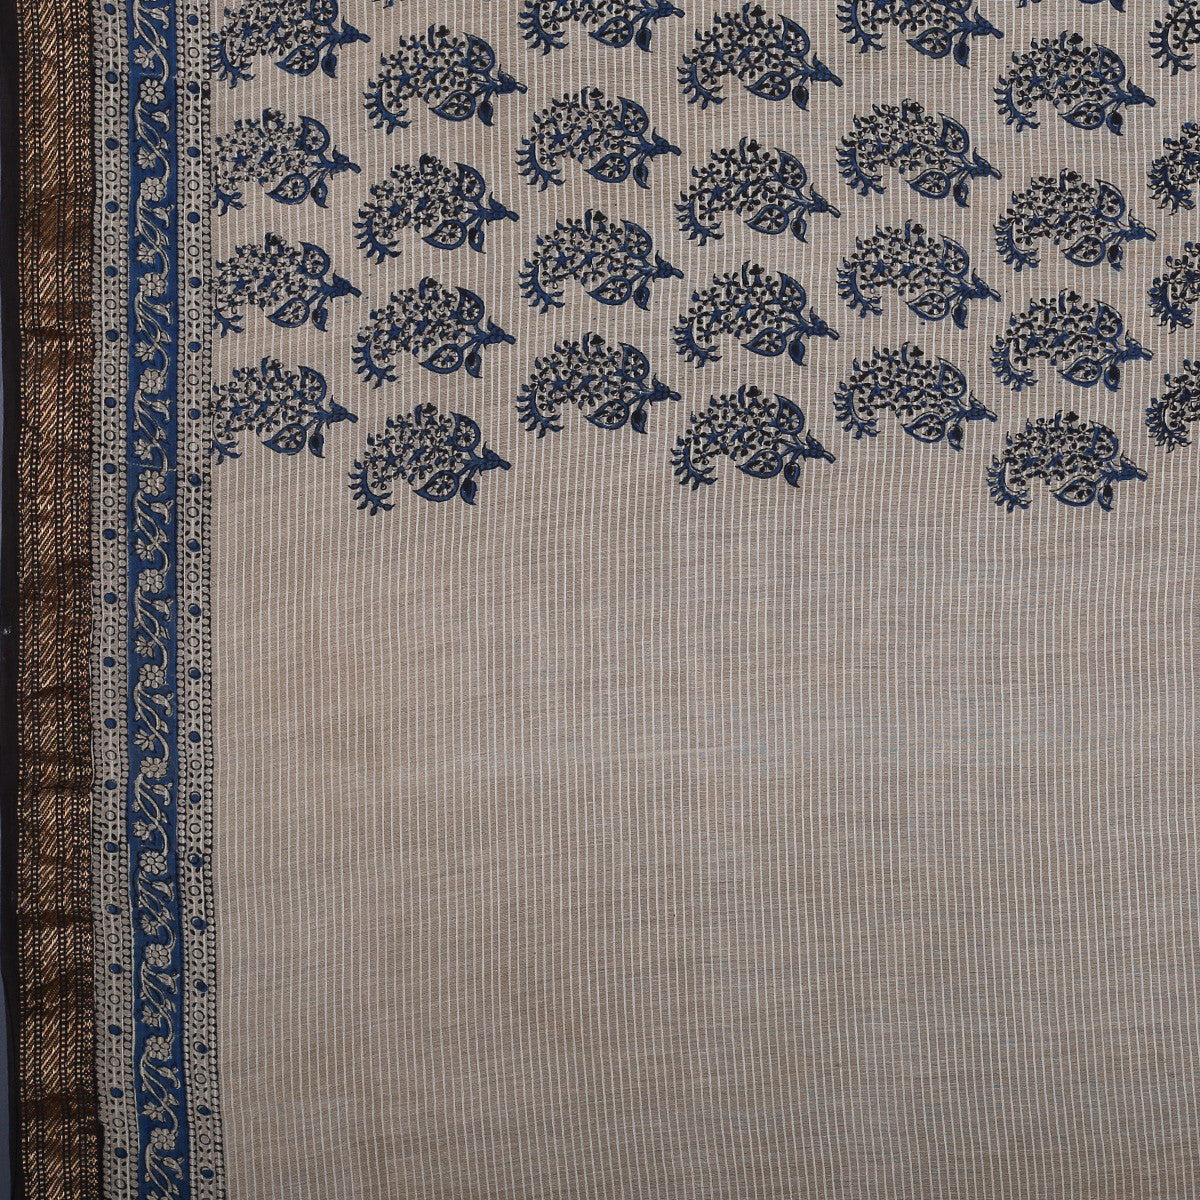 Bagru Hand Block Printed Naturally Dyed Chanderi Cotton Silk Saree 6